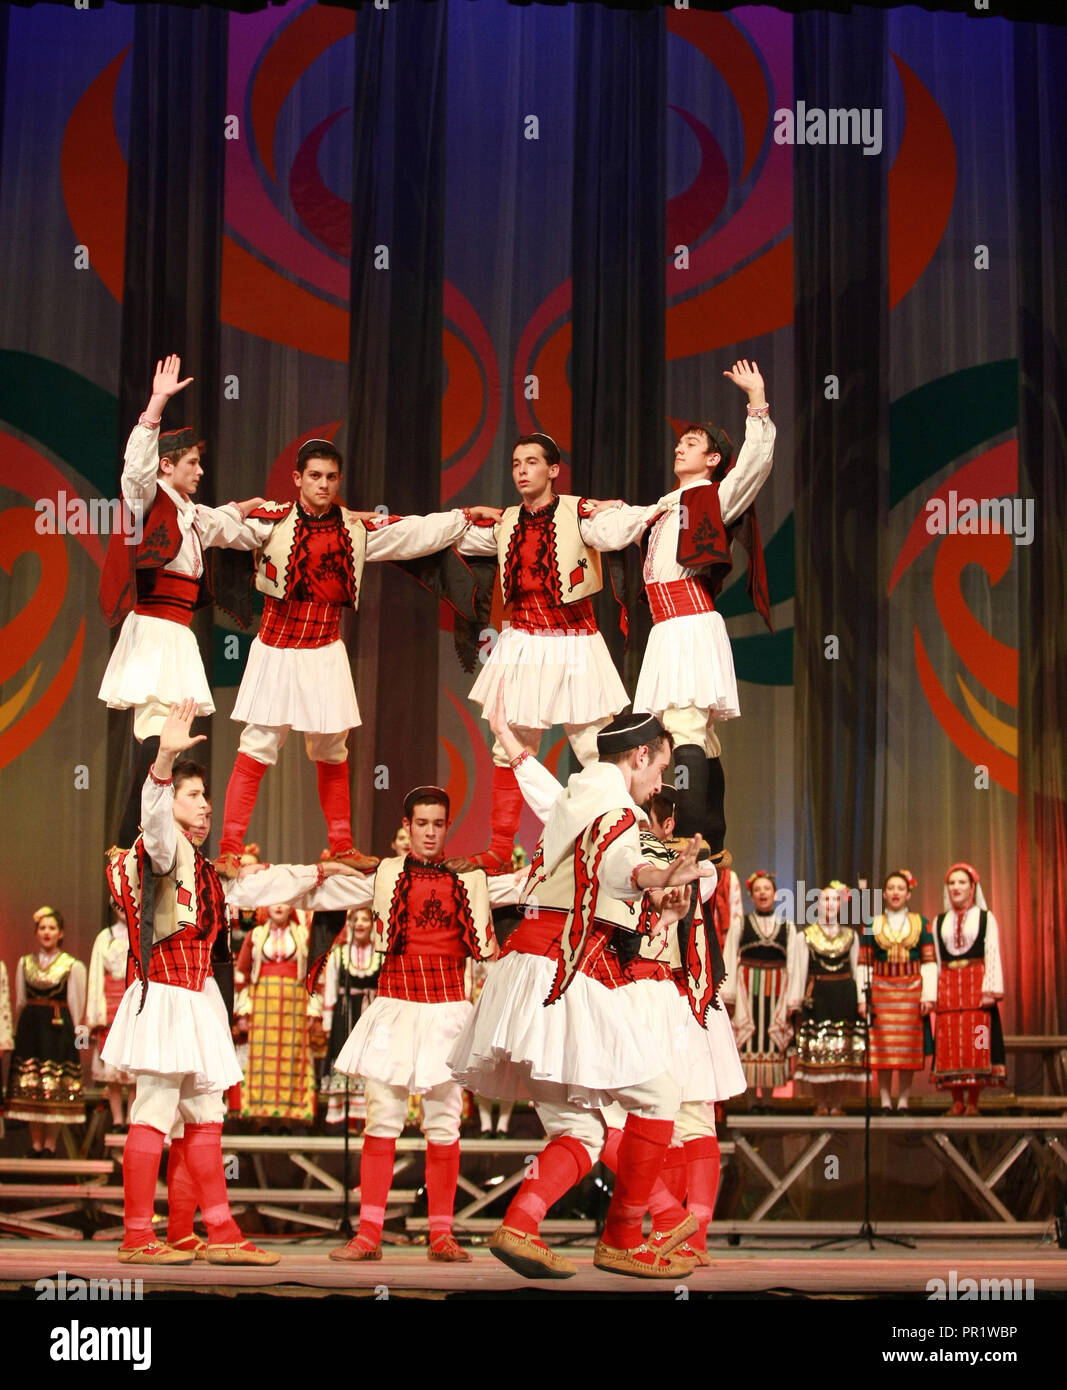 People in traditional folklore costumes perform folk dance bulgarian horo on National folklore fair in the Sofia, Stock Photo